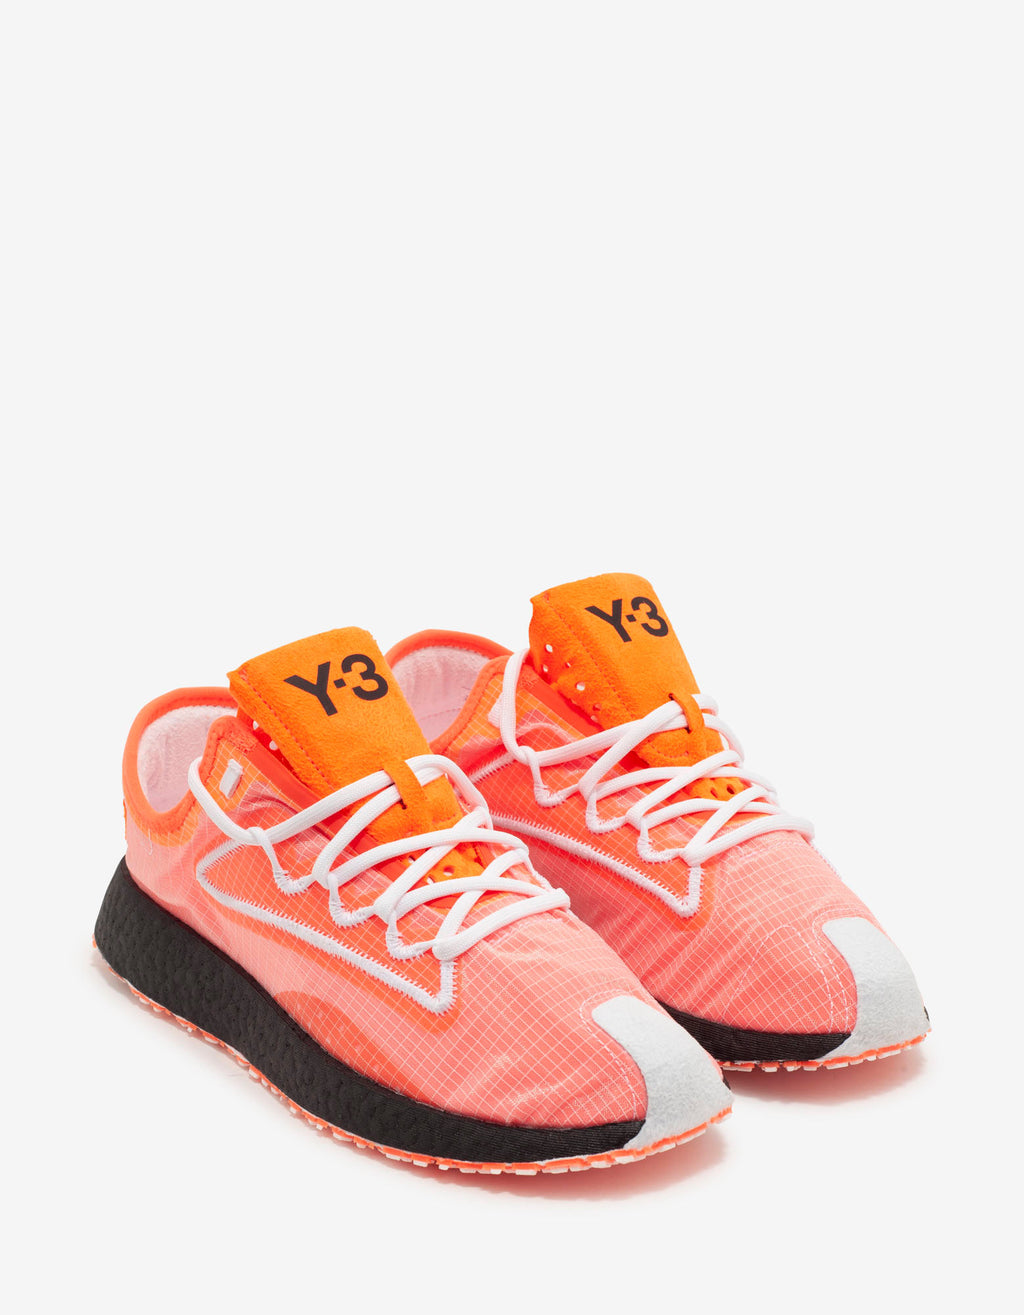 Raito Racer II Orange Trainers